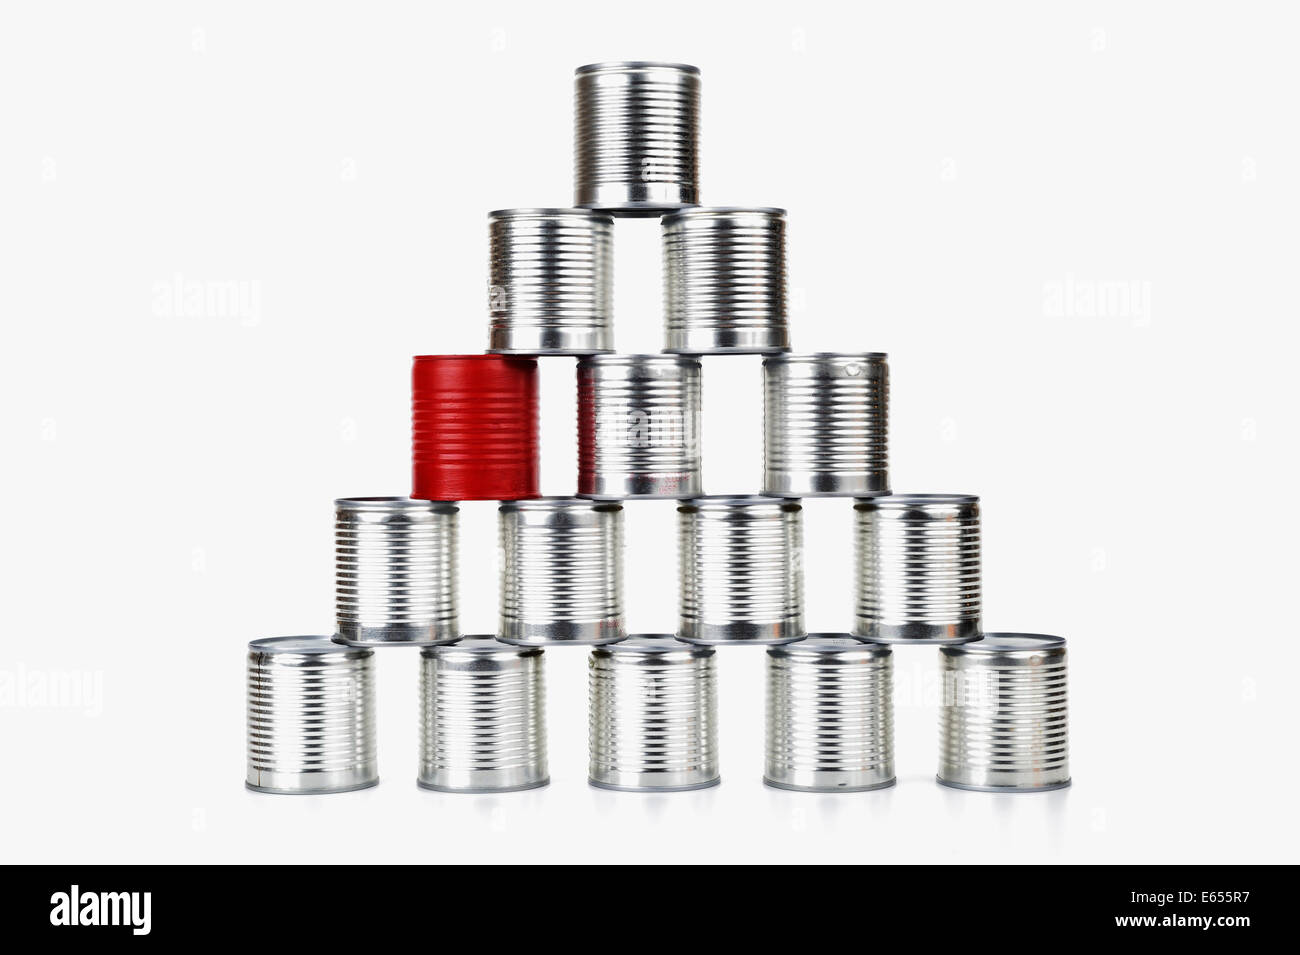 Red tin can inside a pyramid - difference concept - on white background - Stock Image